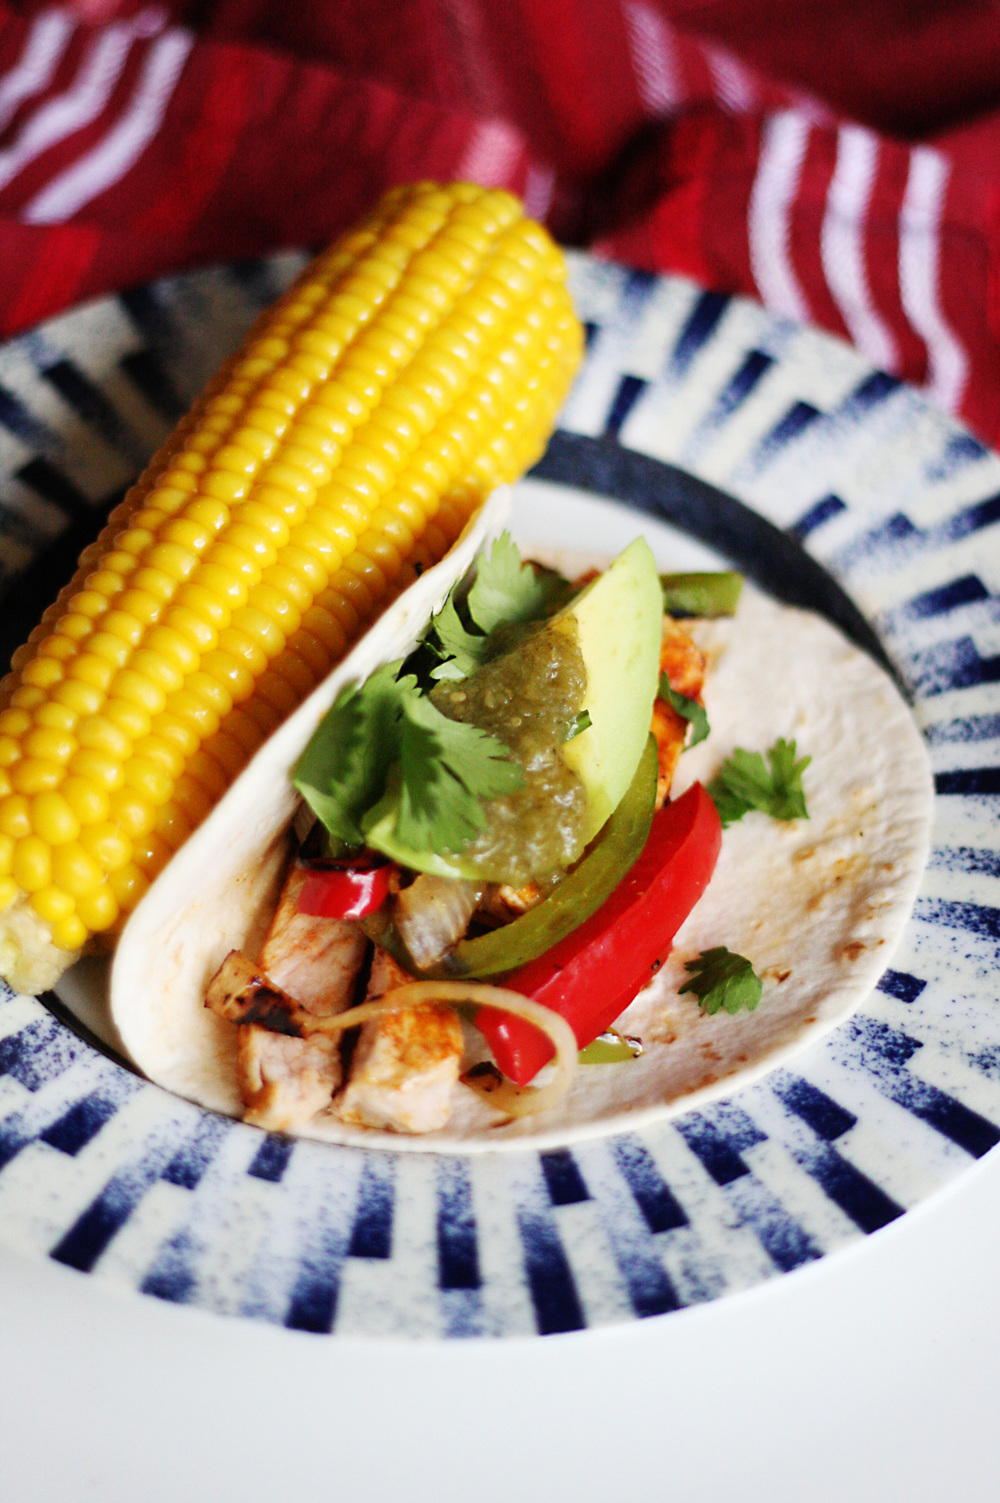 Celebrating Cinco de Mayo: Simple Pork Tacos with Salsa Fresca